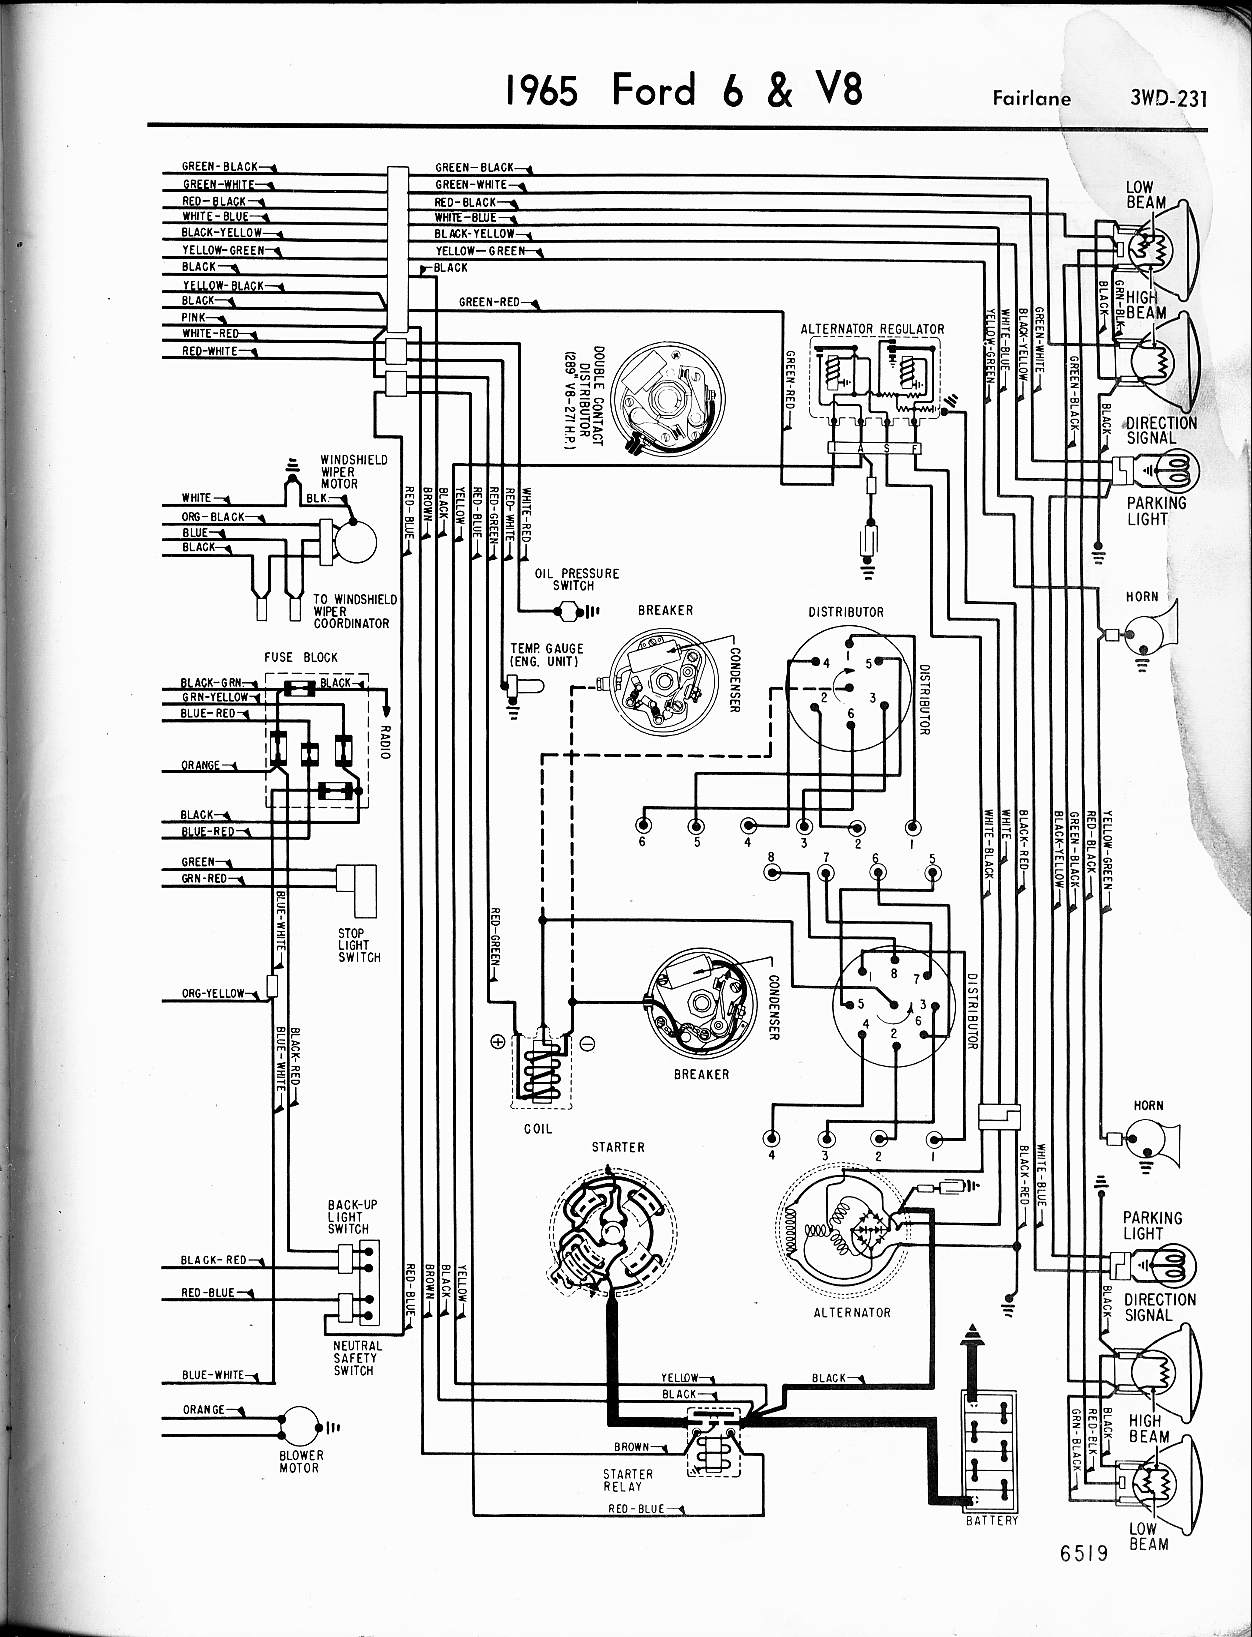 MWire5765 231 57 65 ford wiring diagrams  at aneh.co